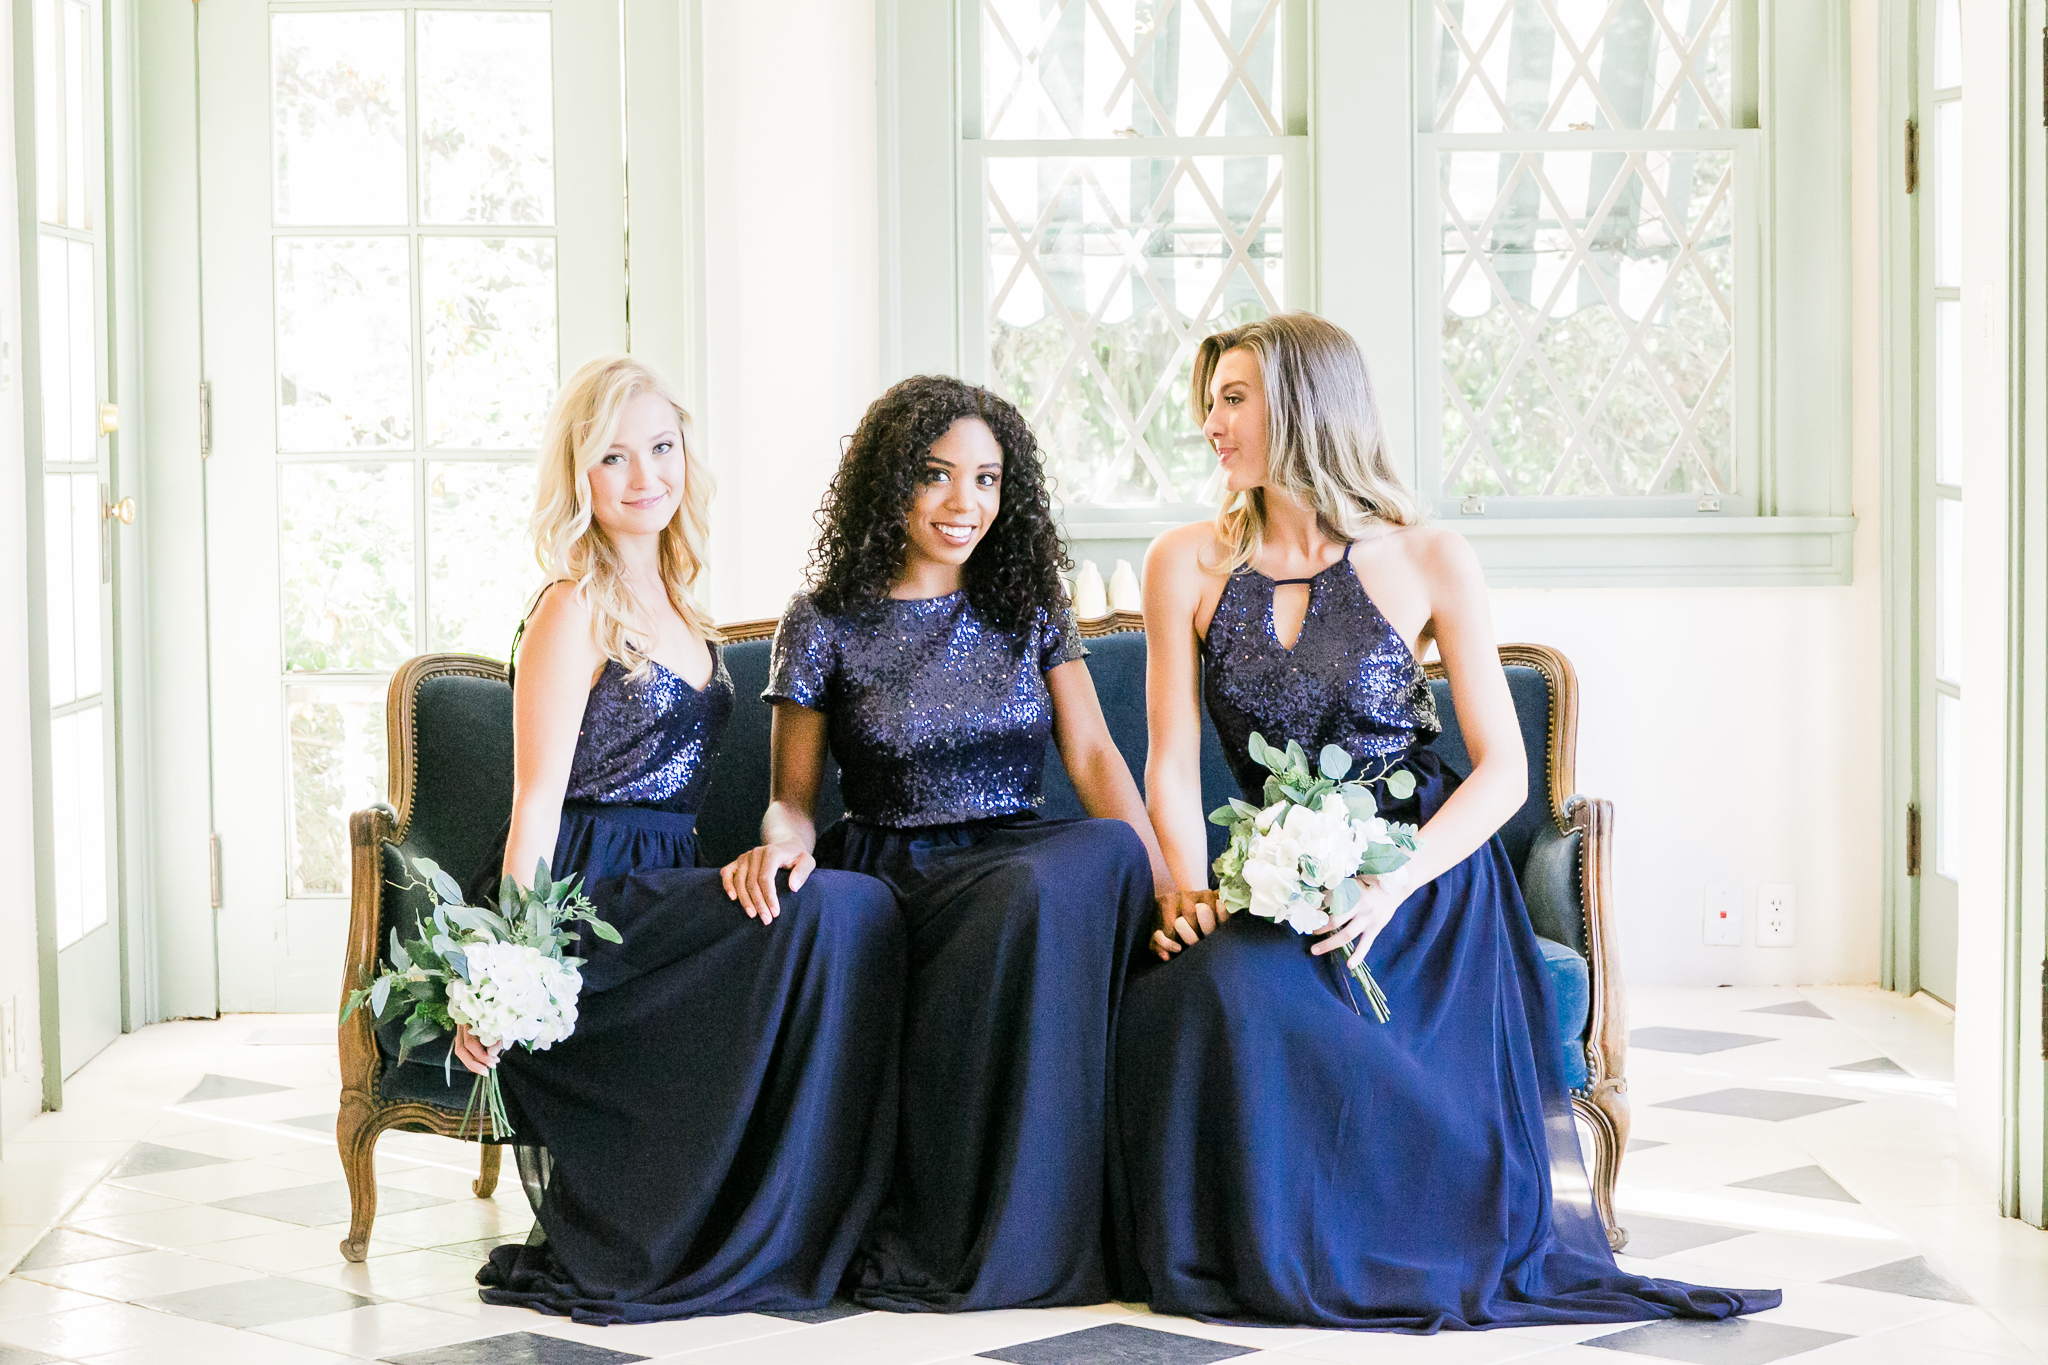 Bridesmaids in Navy sequin tops and chiffon navy skirts. Girls sit together inside beautiful wedding art venue while sitting on a glamorous couch..